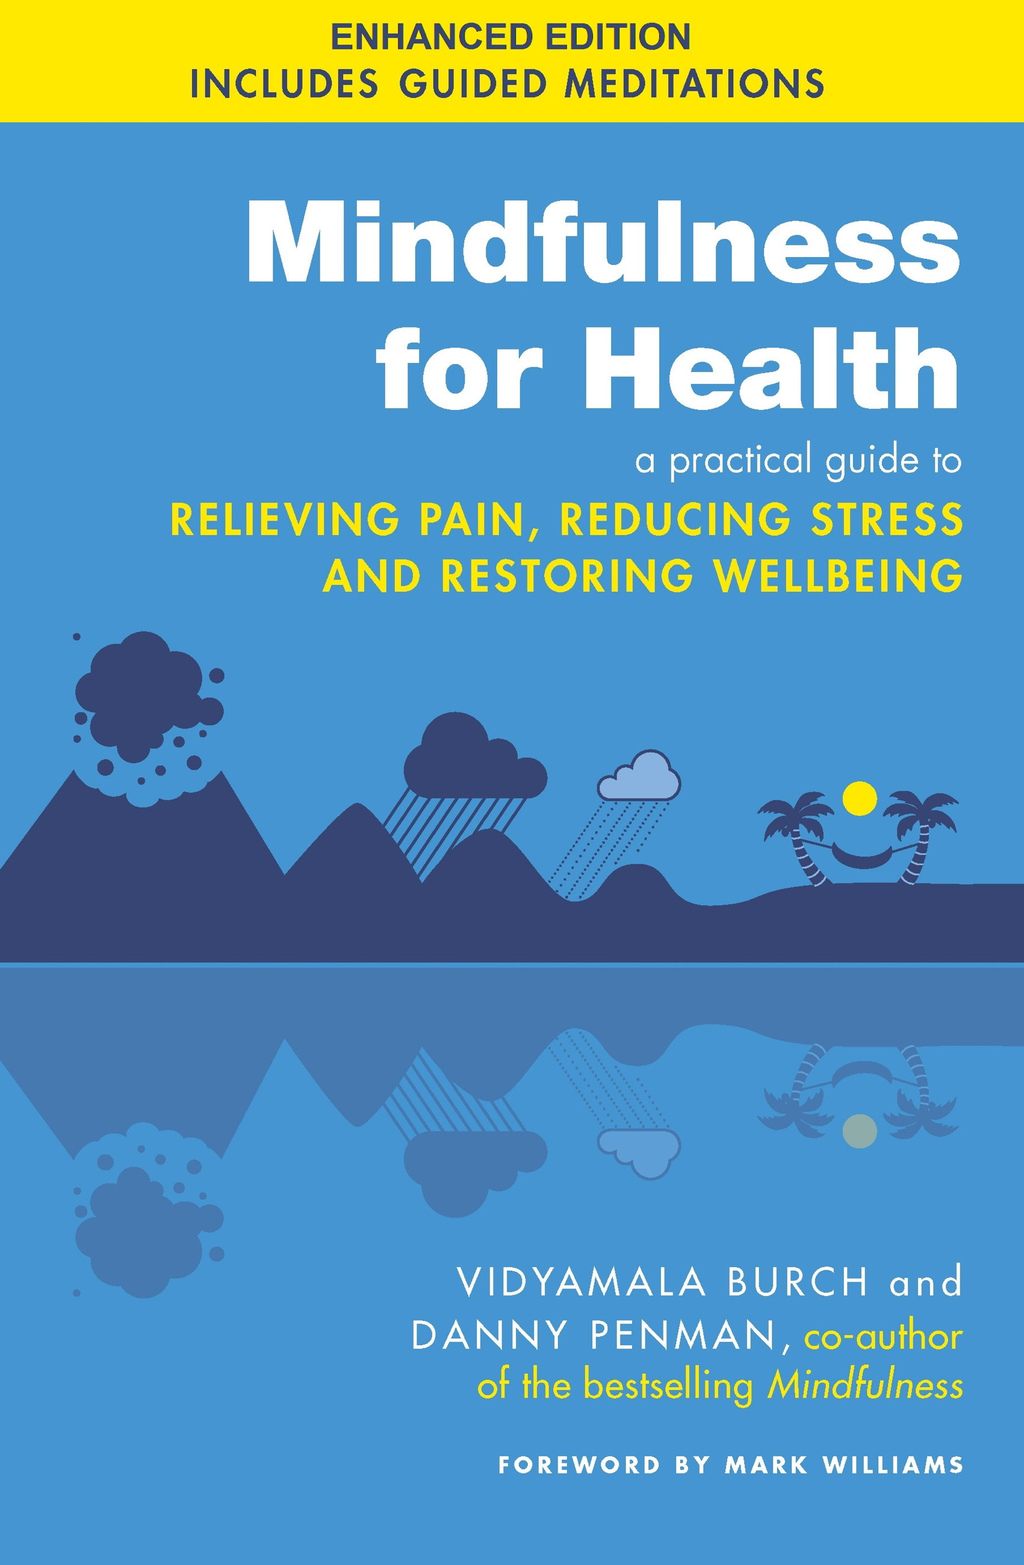 Mindfulness for Health (Enhanced Edition) A practical guide to relieving pain,  reducing stress and restoring wellbeing